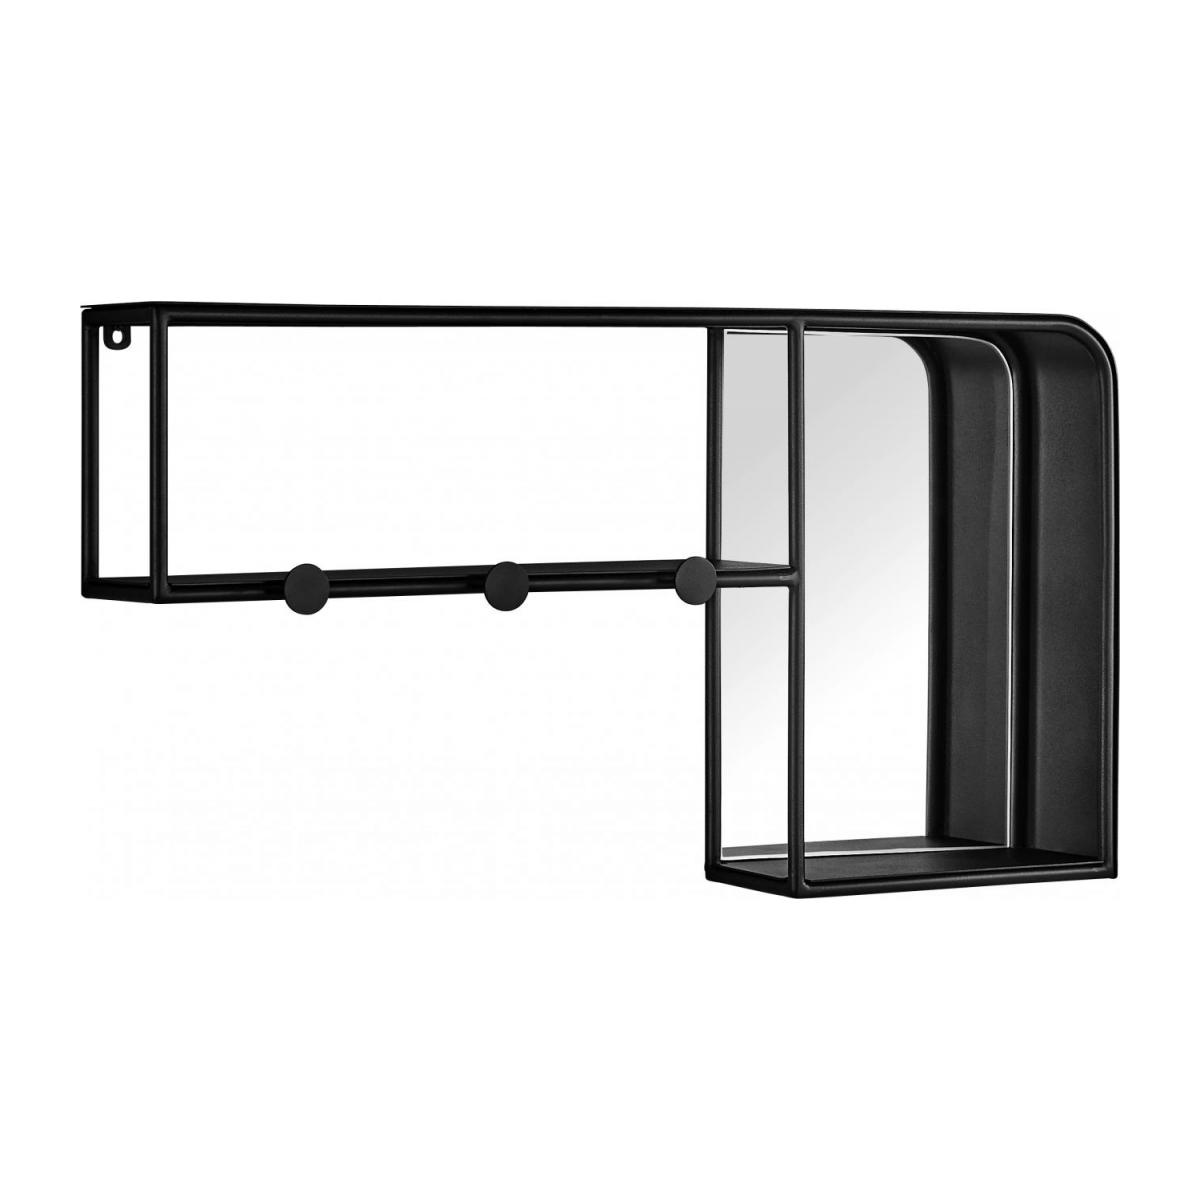 Estantería de pared en metal - Negro n°1